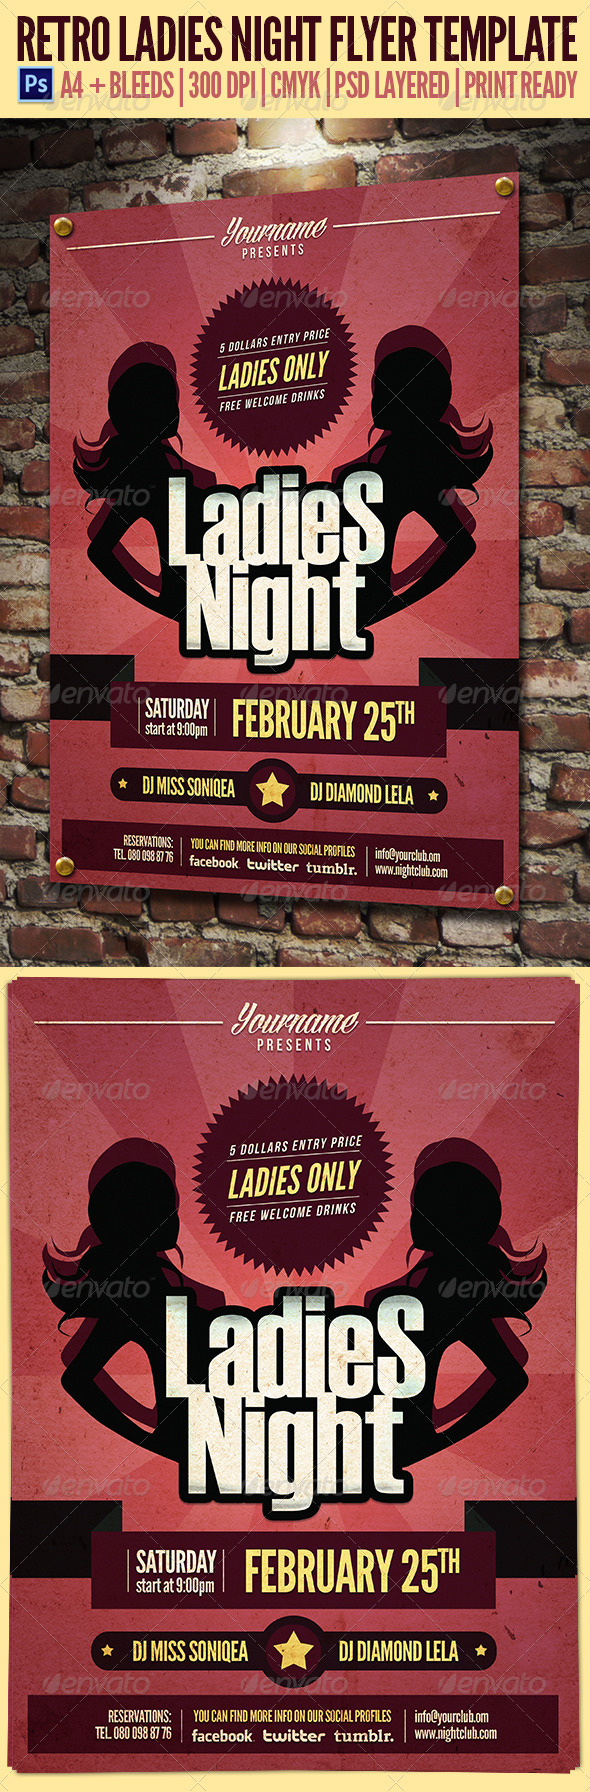 GraphicRiver Retro Ladies Night Flyer Template 3871330